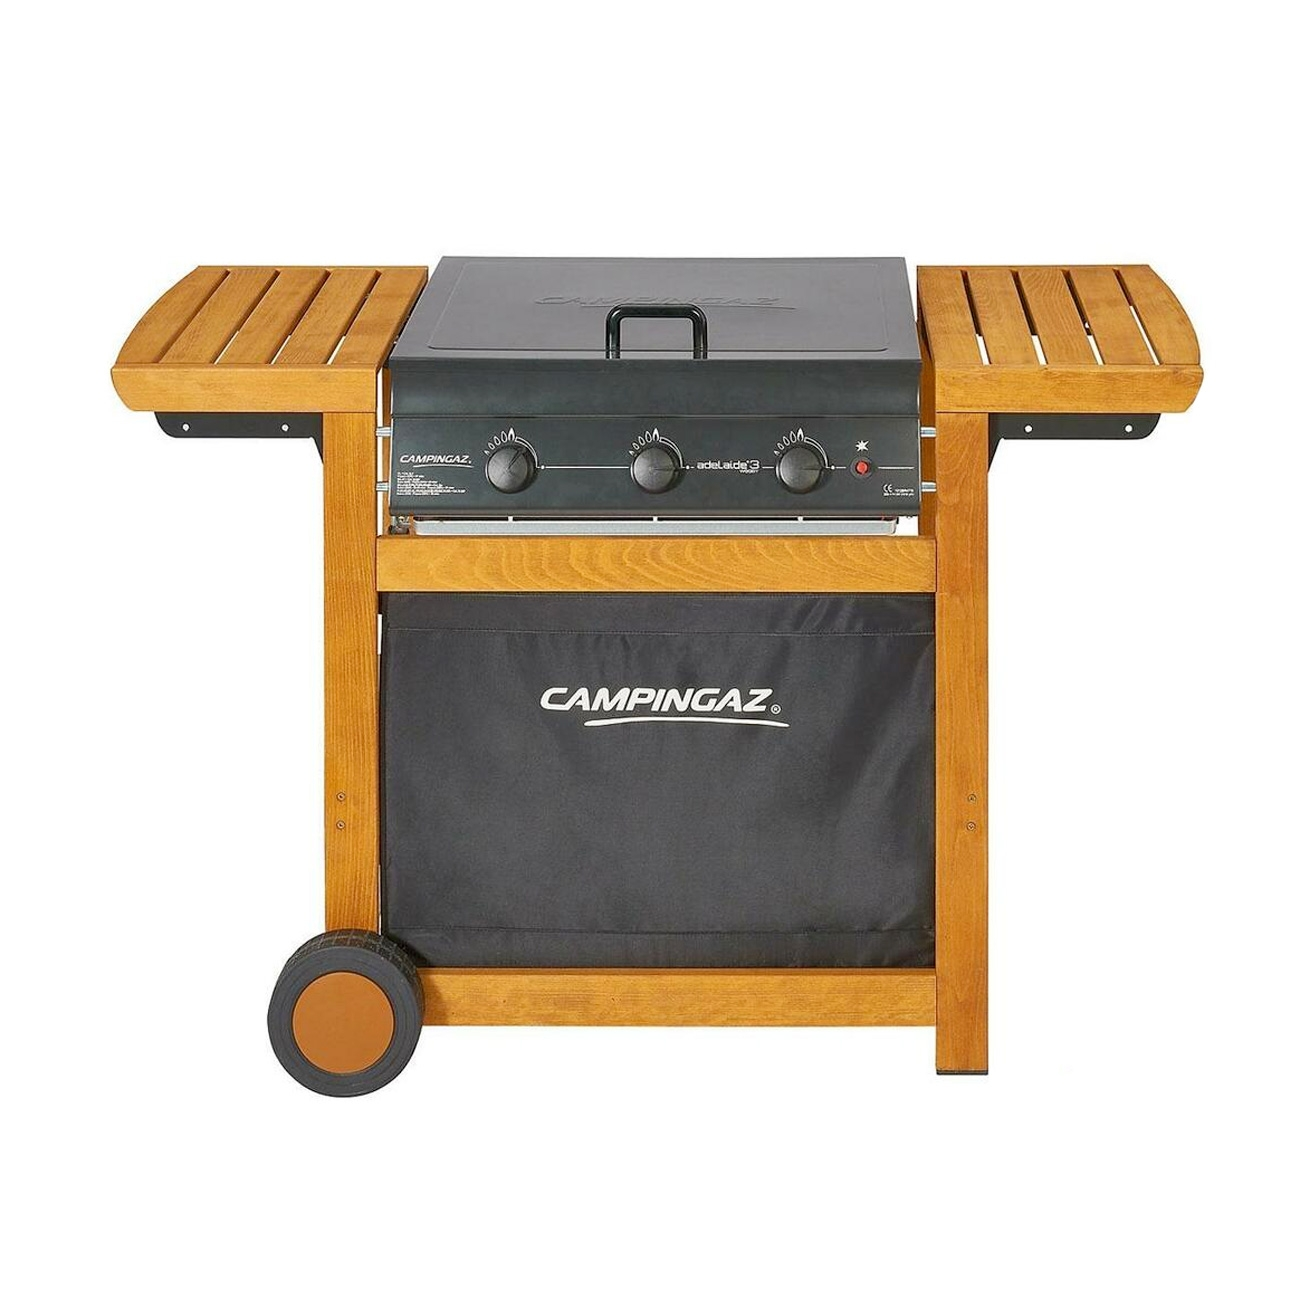 Campingaz Adelaide 3 Woody DG Gas barbecue